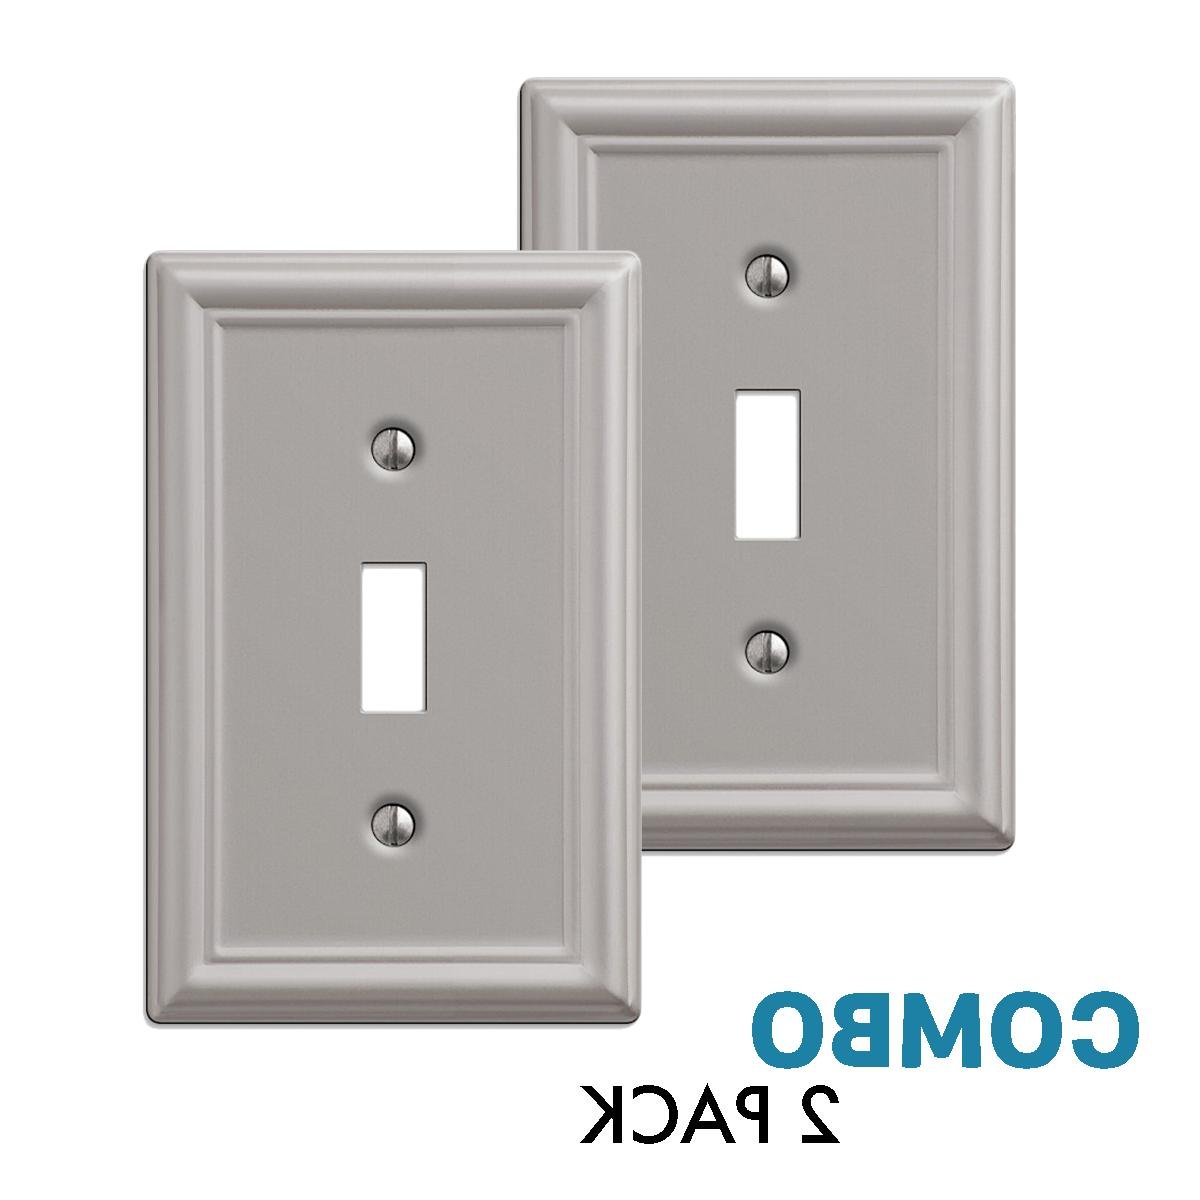 2 pack toggle wall plate light switch